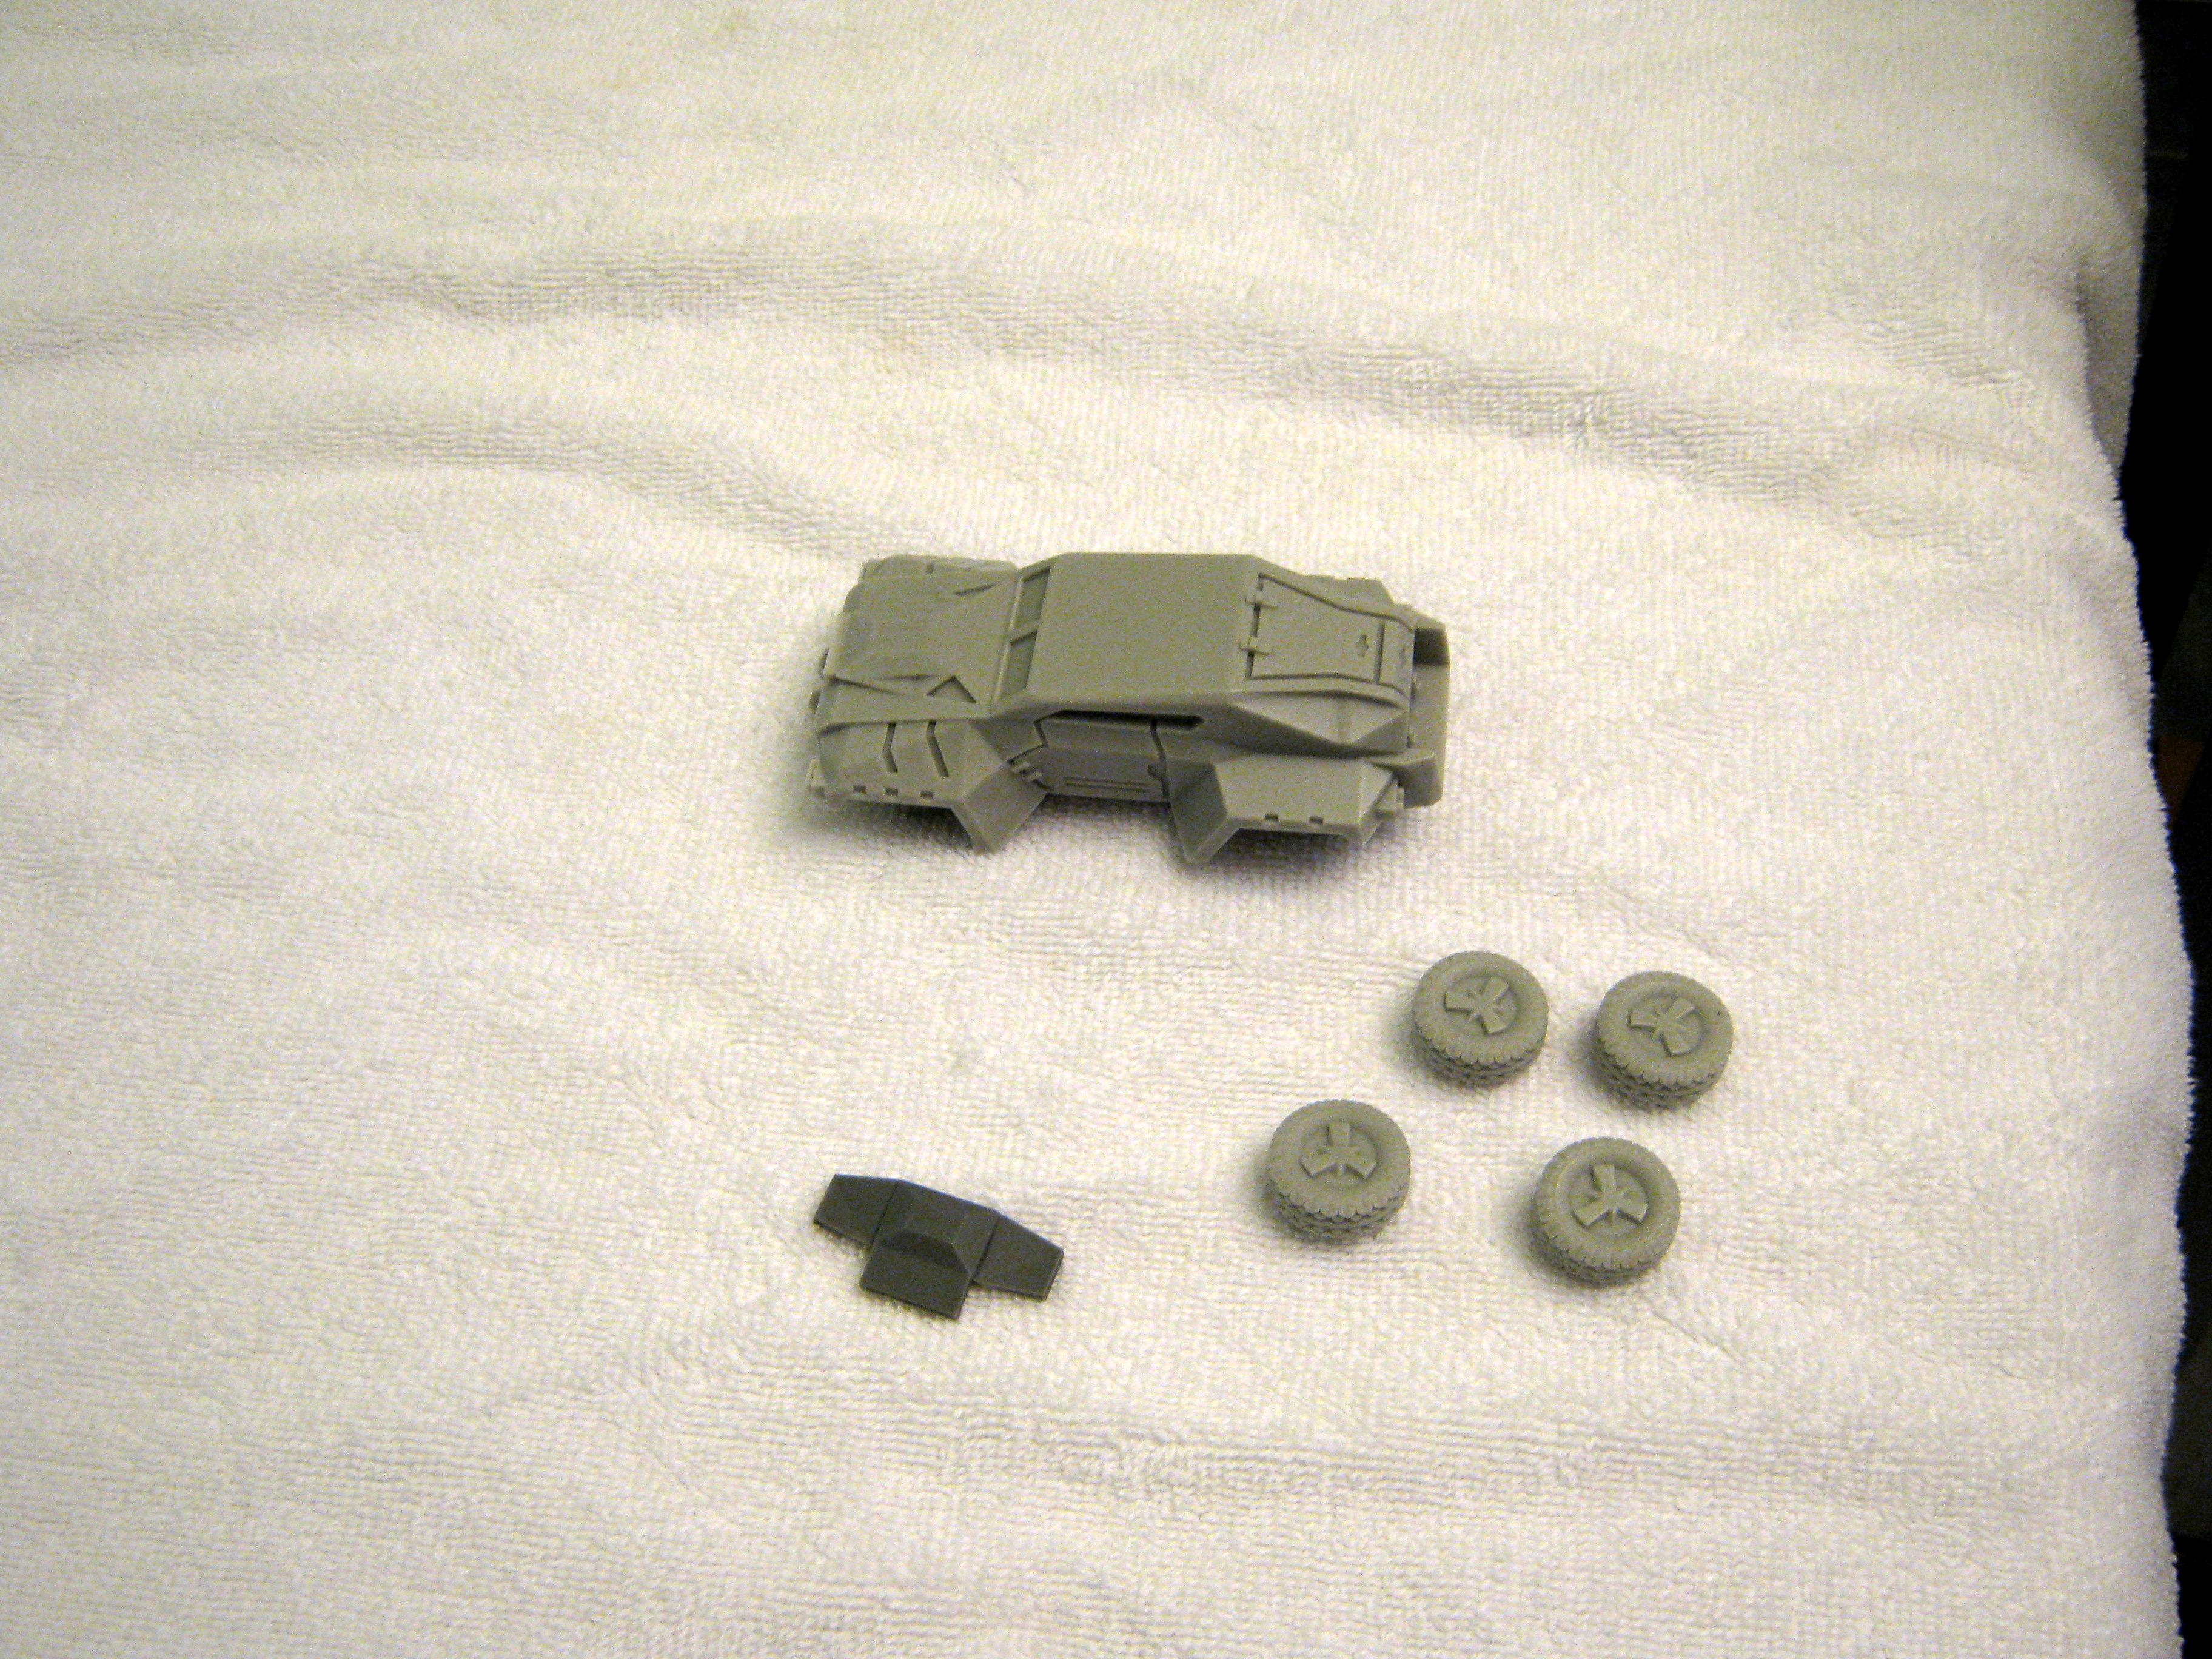 4x4, Afv, Antenocitis Workshop, Armored Car, Atv, Conversion, Counts As, Dark Age Of Technology, Fast Attack, High Mobility Tactical Vehicle, Imperial, Infinity, Jeep, Marrua Gaucho, Off Road, Proxy, Recon Vehicle, Relic, Scouts, Suv, Utility Vehicle, Wheeled Vehicle